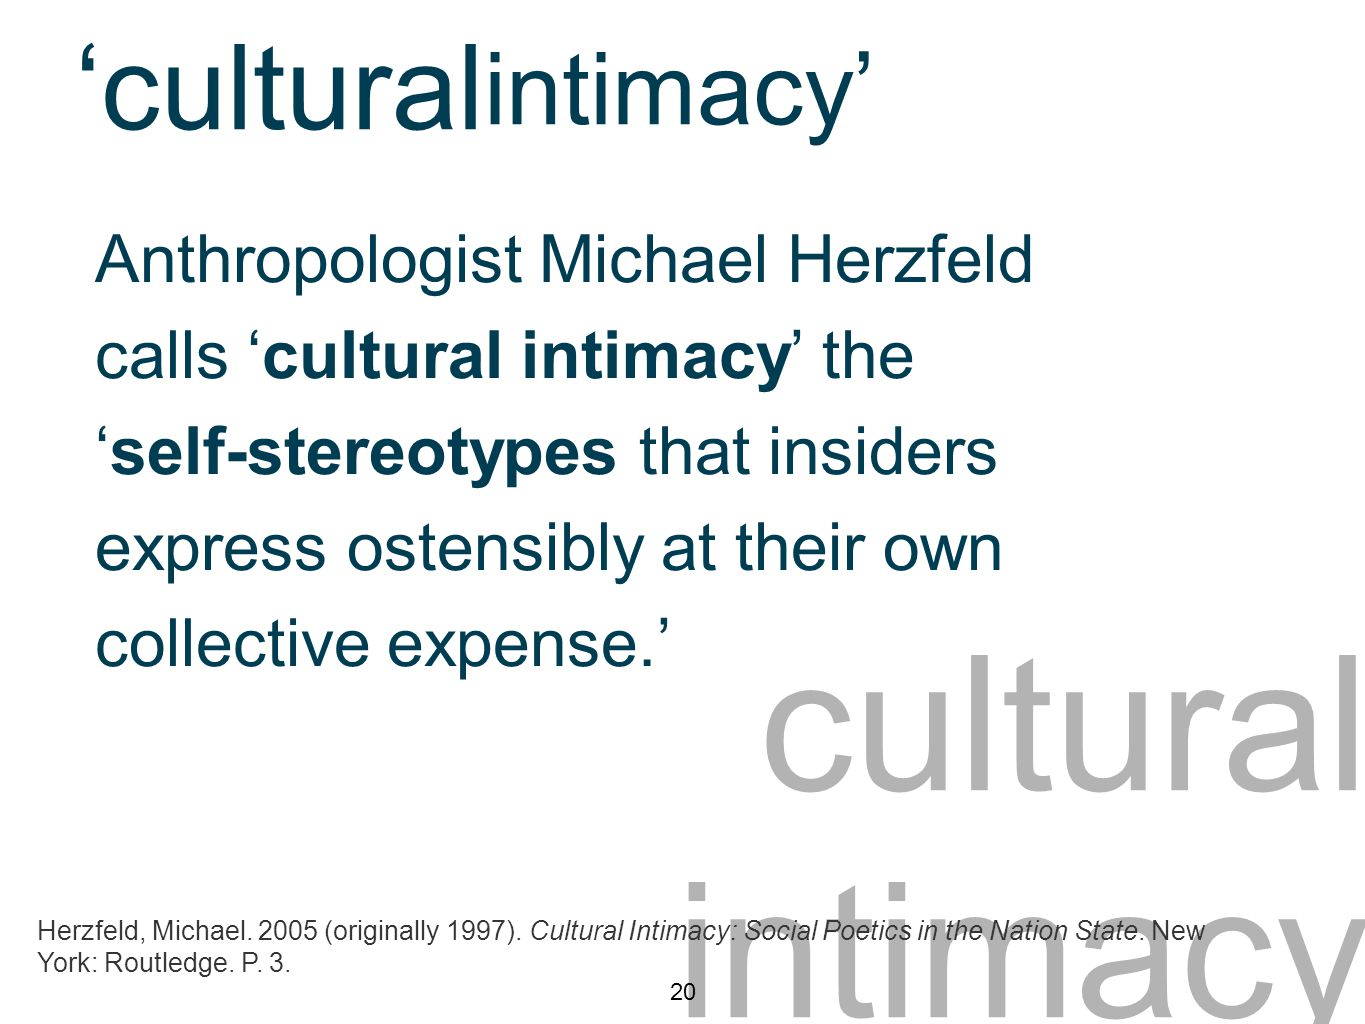 cultural intimacy intimacy' 'cultural Anthropologist Michael Herzfeld calls 'cultural intimacy' the 'self-stereotypes that insiders express ostensibly